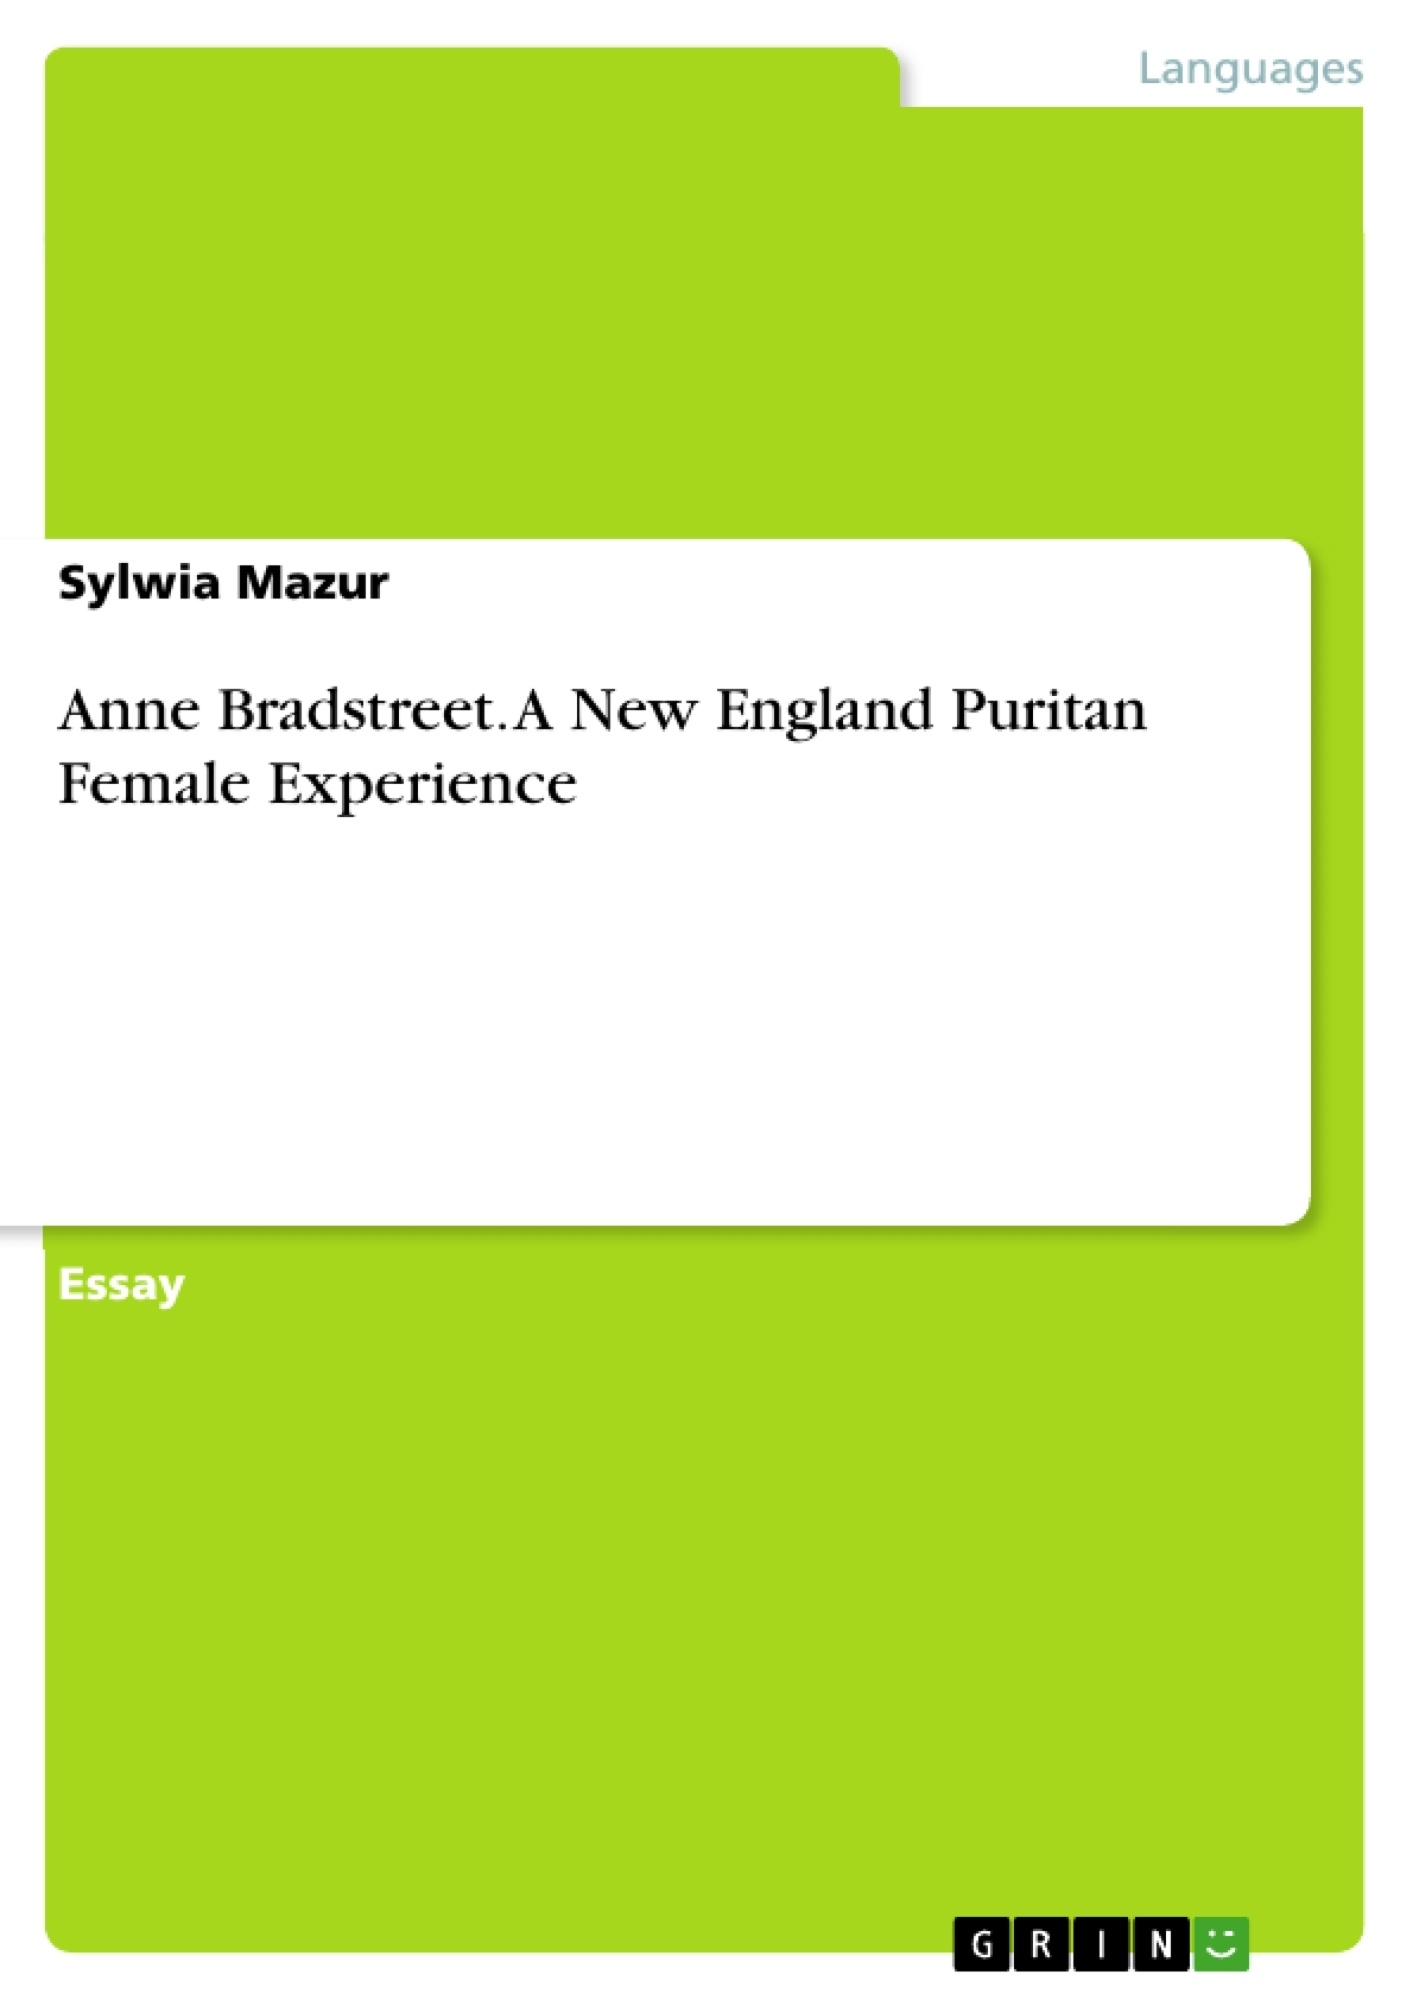 anne bradstreet a new england puritan female experience publish upload your own papers earn money and win an iphone 7